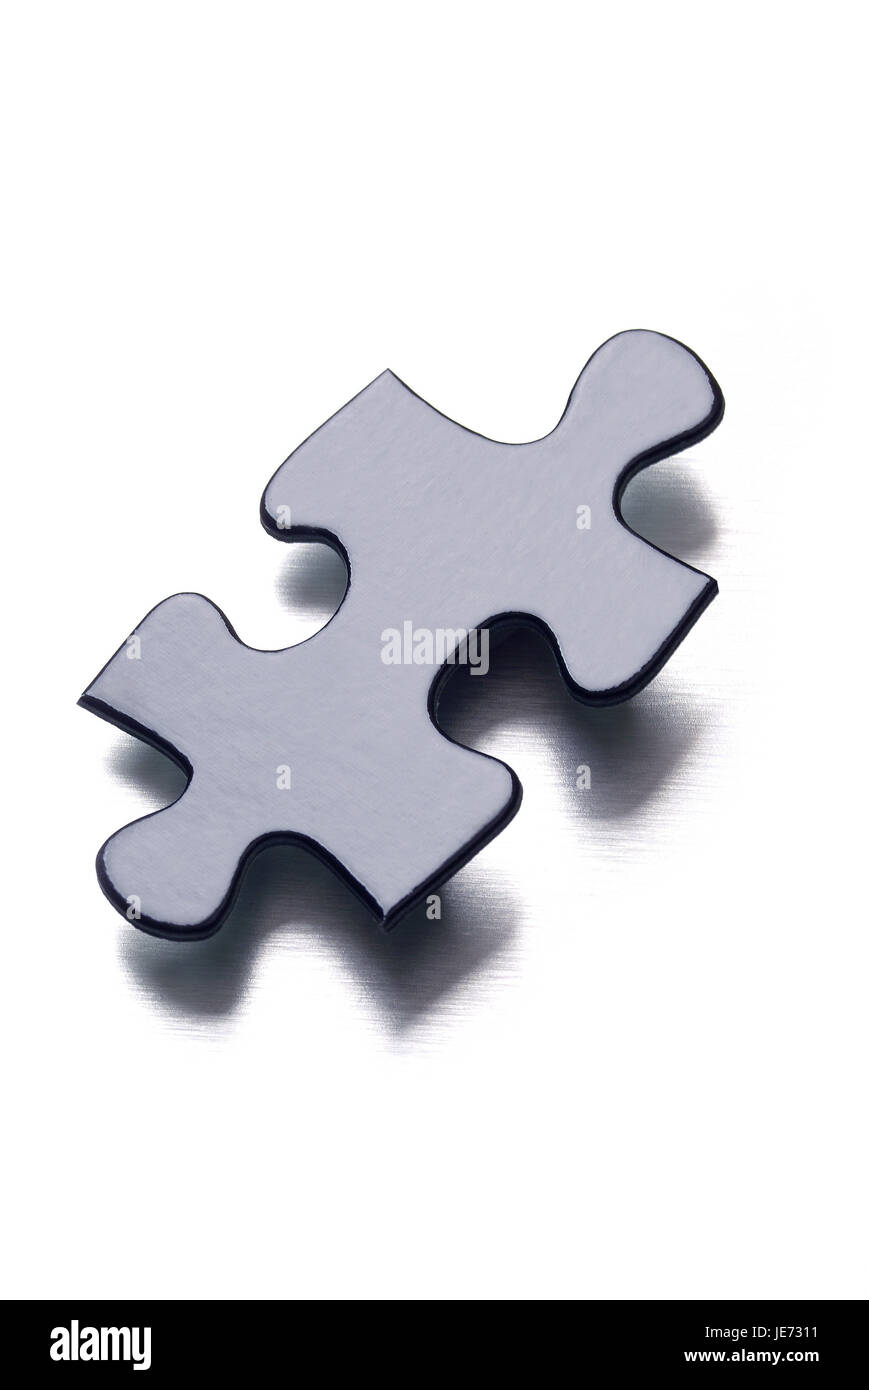 Jigsaw puzzle part, - Stock Image